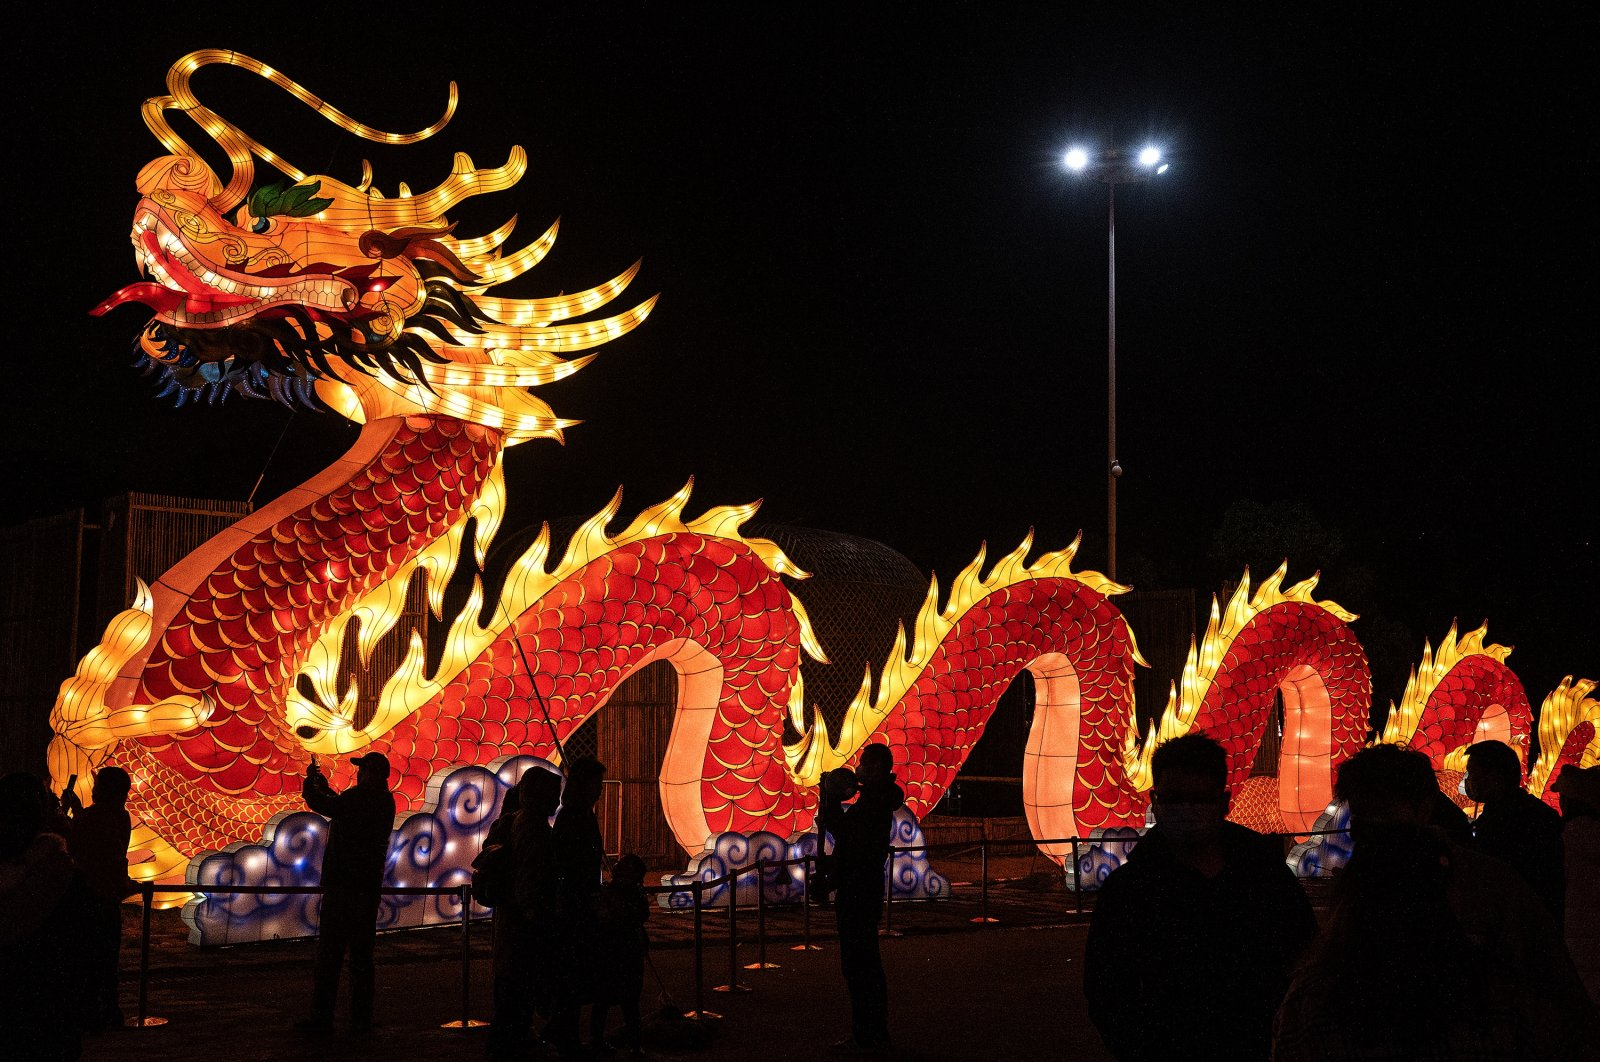 Residents visiting a dragon lantern during a festival show in Wuhan, Hubei province, China, Feb. 26, 2021. (Photo by Getty Images)